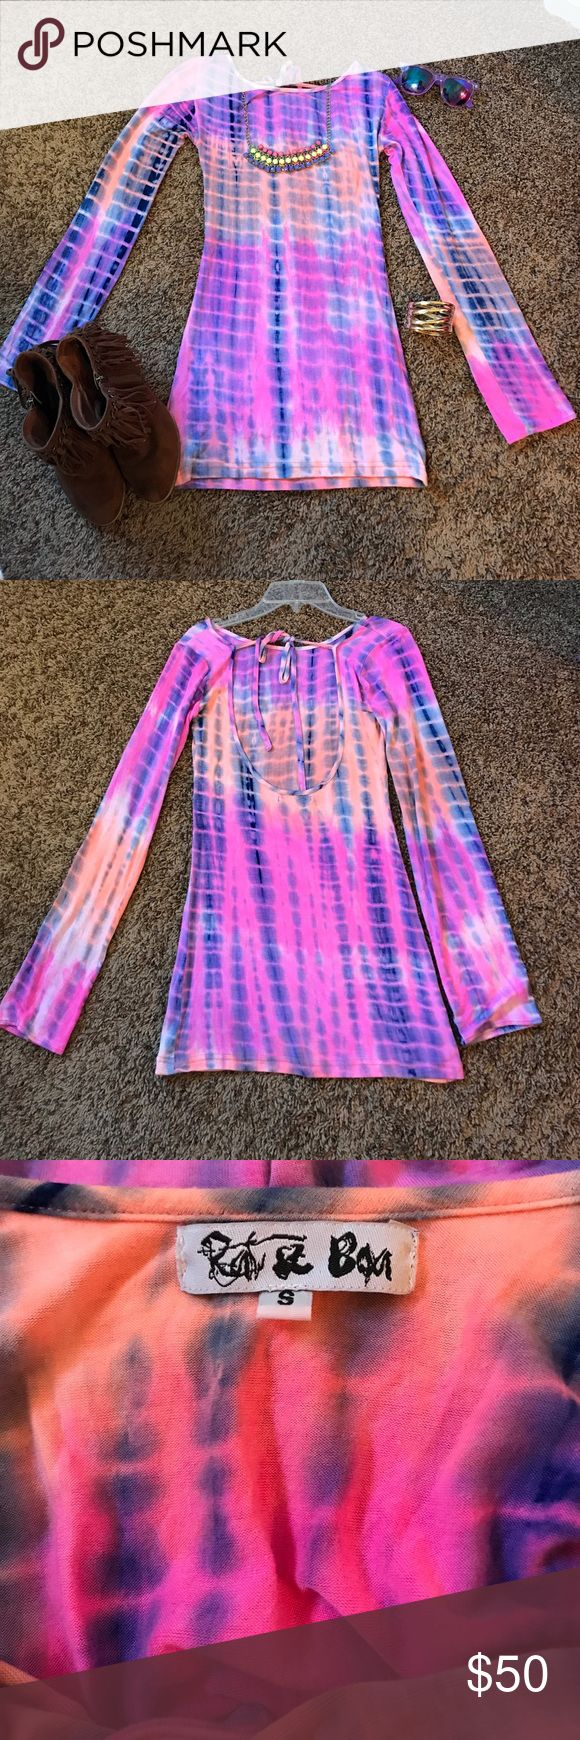 💓Rat & Boa Luna Ray Tie Dye Dress💓 SOLD OUT and you will not find this anywhere, trust me I had to HUNT for this for weeks before I luckily found it!!  Worn once to a festival!  Super adorable on!  This is a size small.  Short and very fitted.  The back is open with a tie at the top.  My personal opinion, this is perfect if you are a size 00, 0 or 2.  Fits all the right curves and makes your little booty pop!☺️Perfect for Lollapalooza, Bonnaroo or Coachella! Rat and Boa Dresses Mini